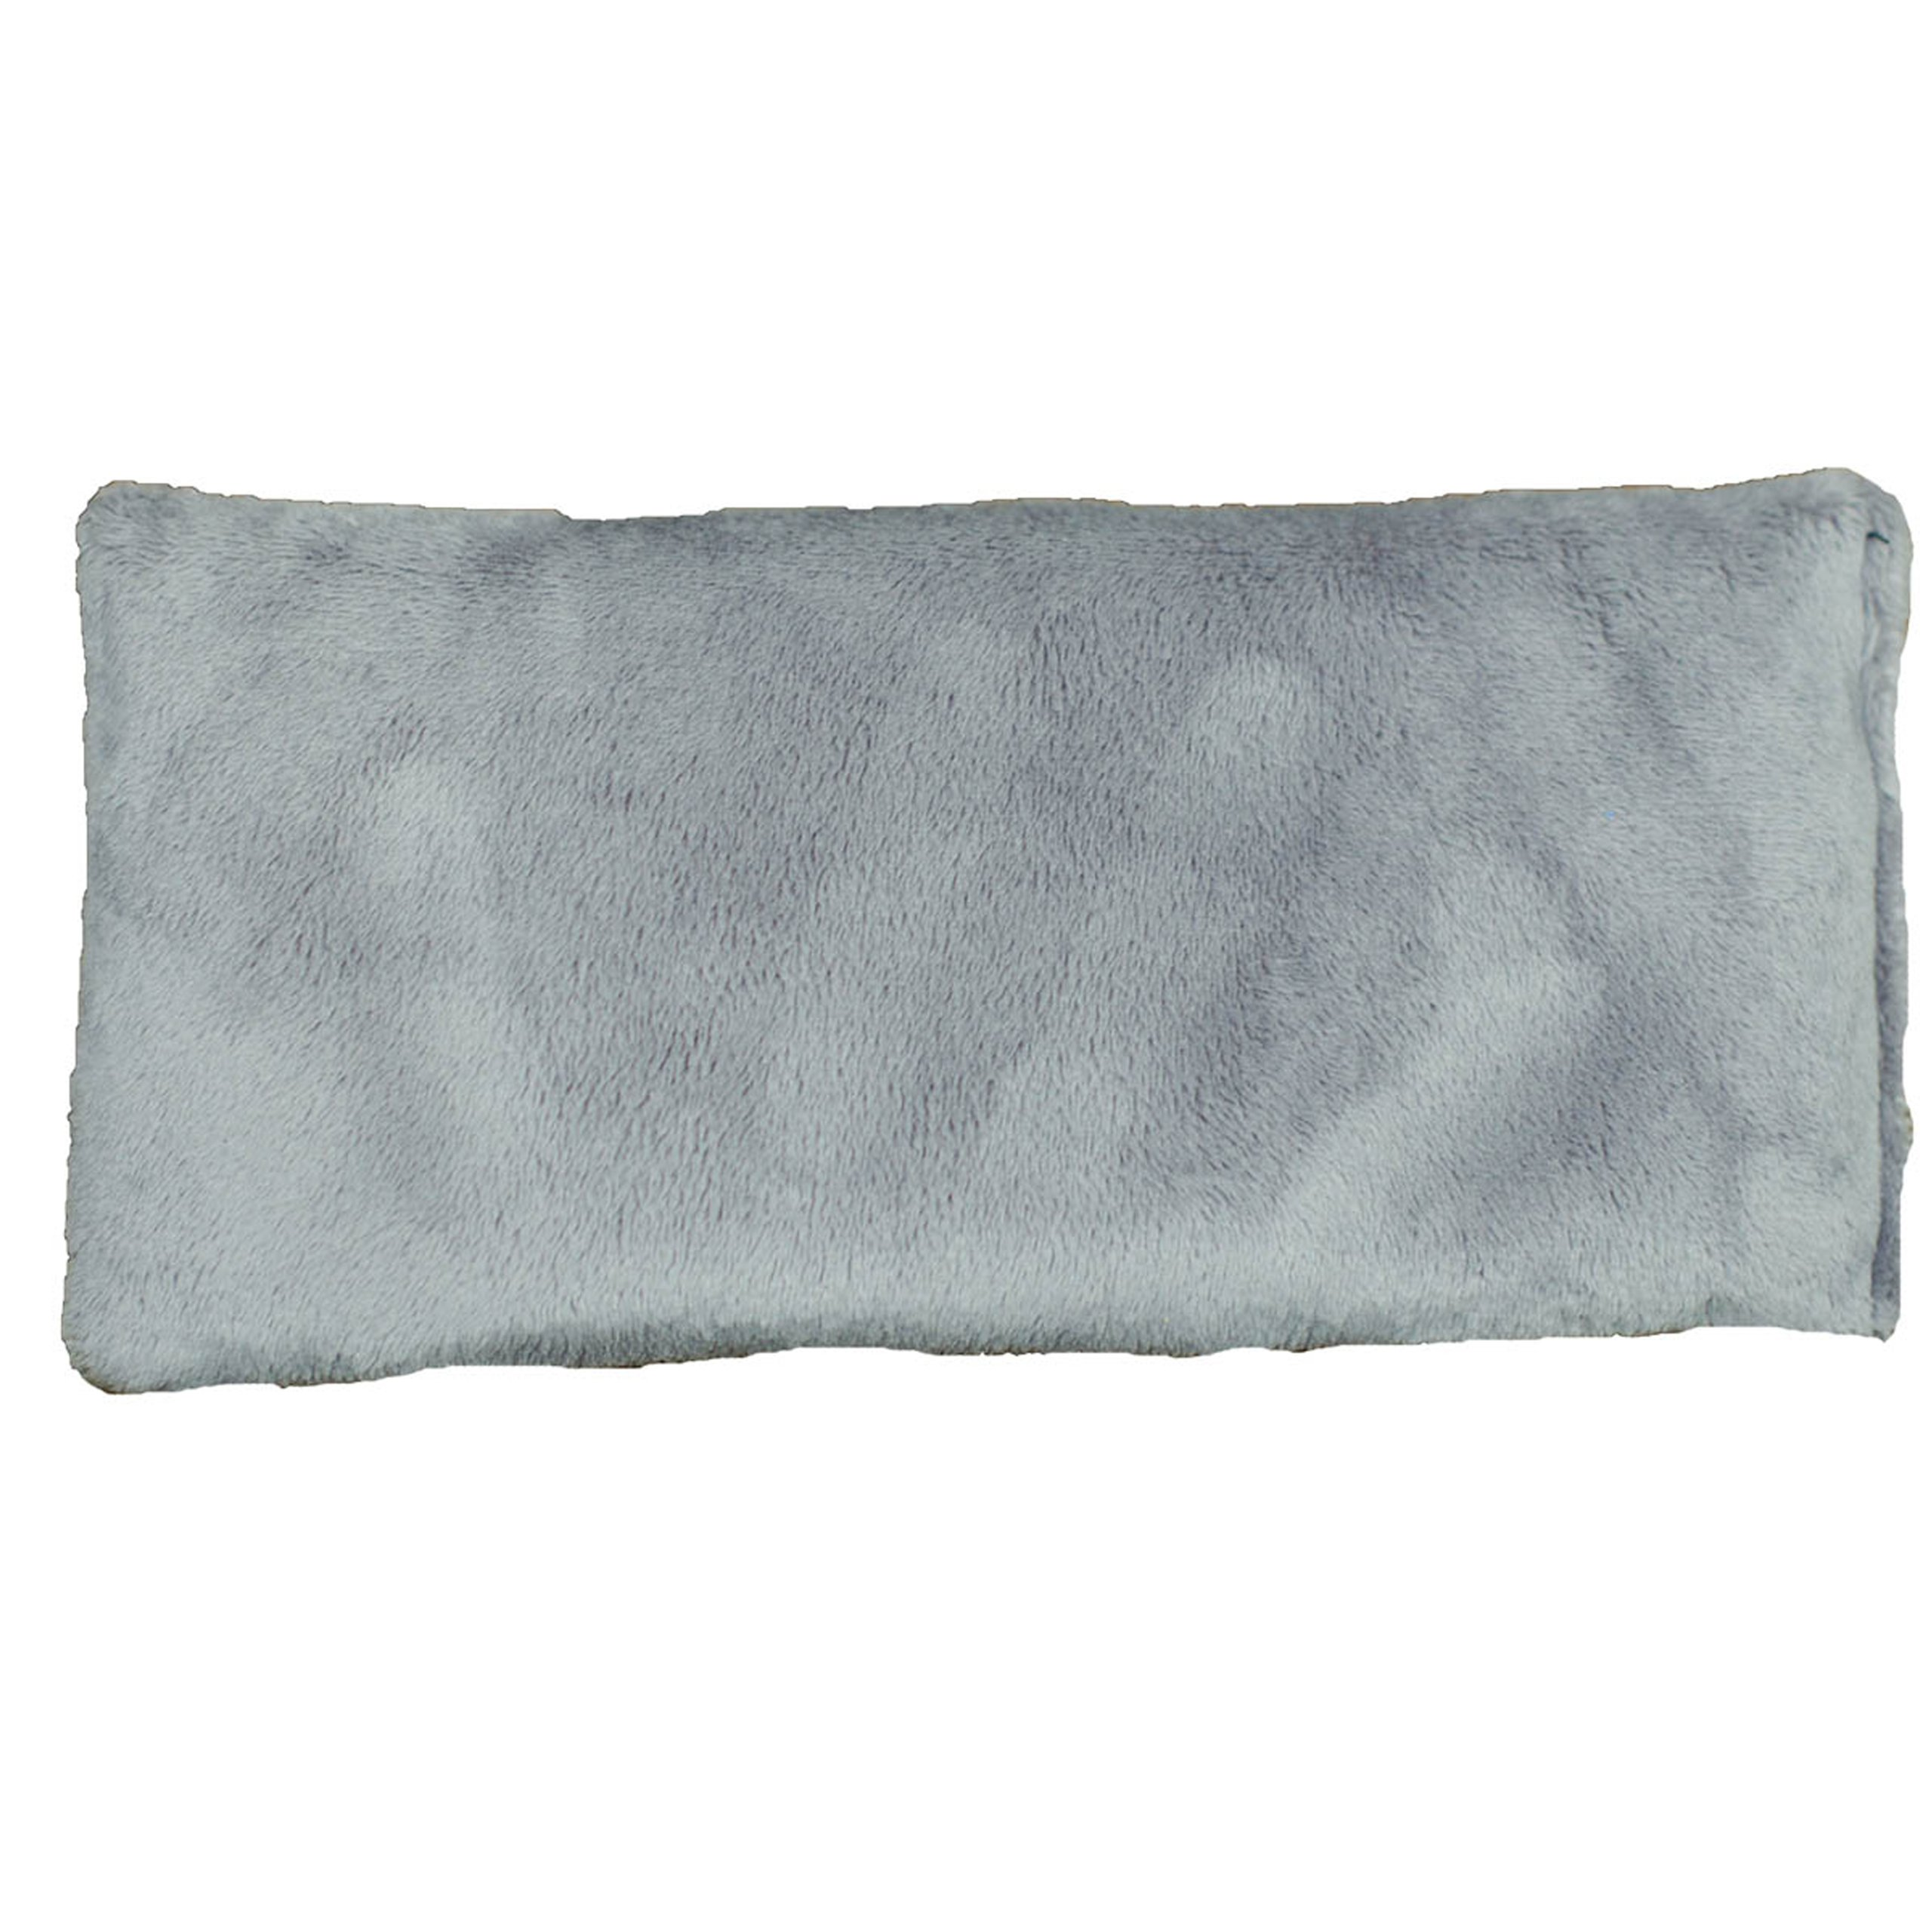 Herbal Concepts Comfort Eye Pac, Charcoal by Herbal Concepts